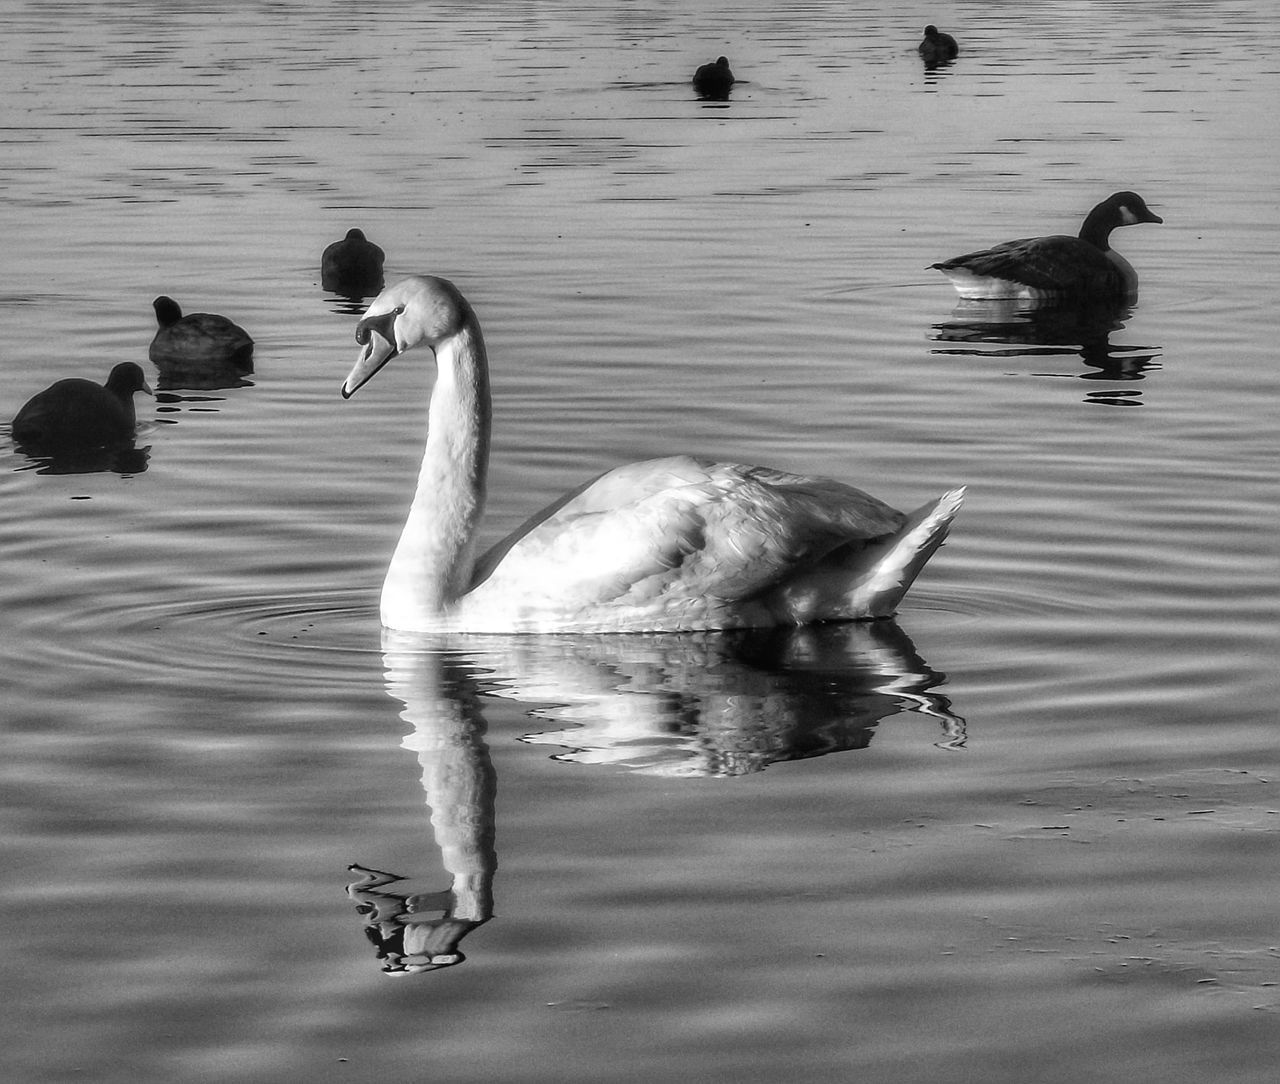 Beautiful swan taken at Pennington Flash Manchester Bird Animal Themes Animals In The Wild No People Water Swan Water Bird Outdoor Beauty Outdoor Photography Nature_perfection Nature On Your Doorstep Black And White Photography Black And White Portrait Black And White Collection  Monochrome Photography Bnw_captures Landscape_photography Fujifilm Creative Light And Shadow Malephotographerofthemonth Nature And Wildlife By Tony Bayliss Birds_collection Birds Of EyeEm  Reflections In The Water Wildlife Reflection